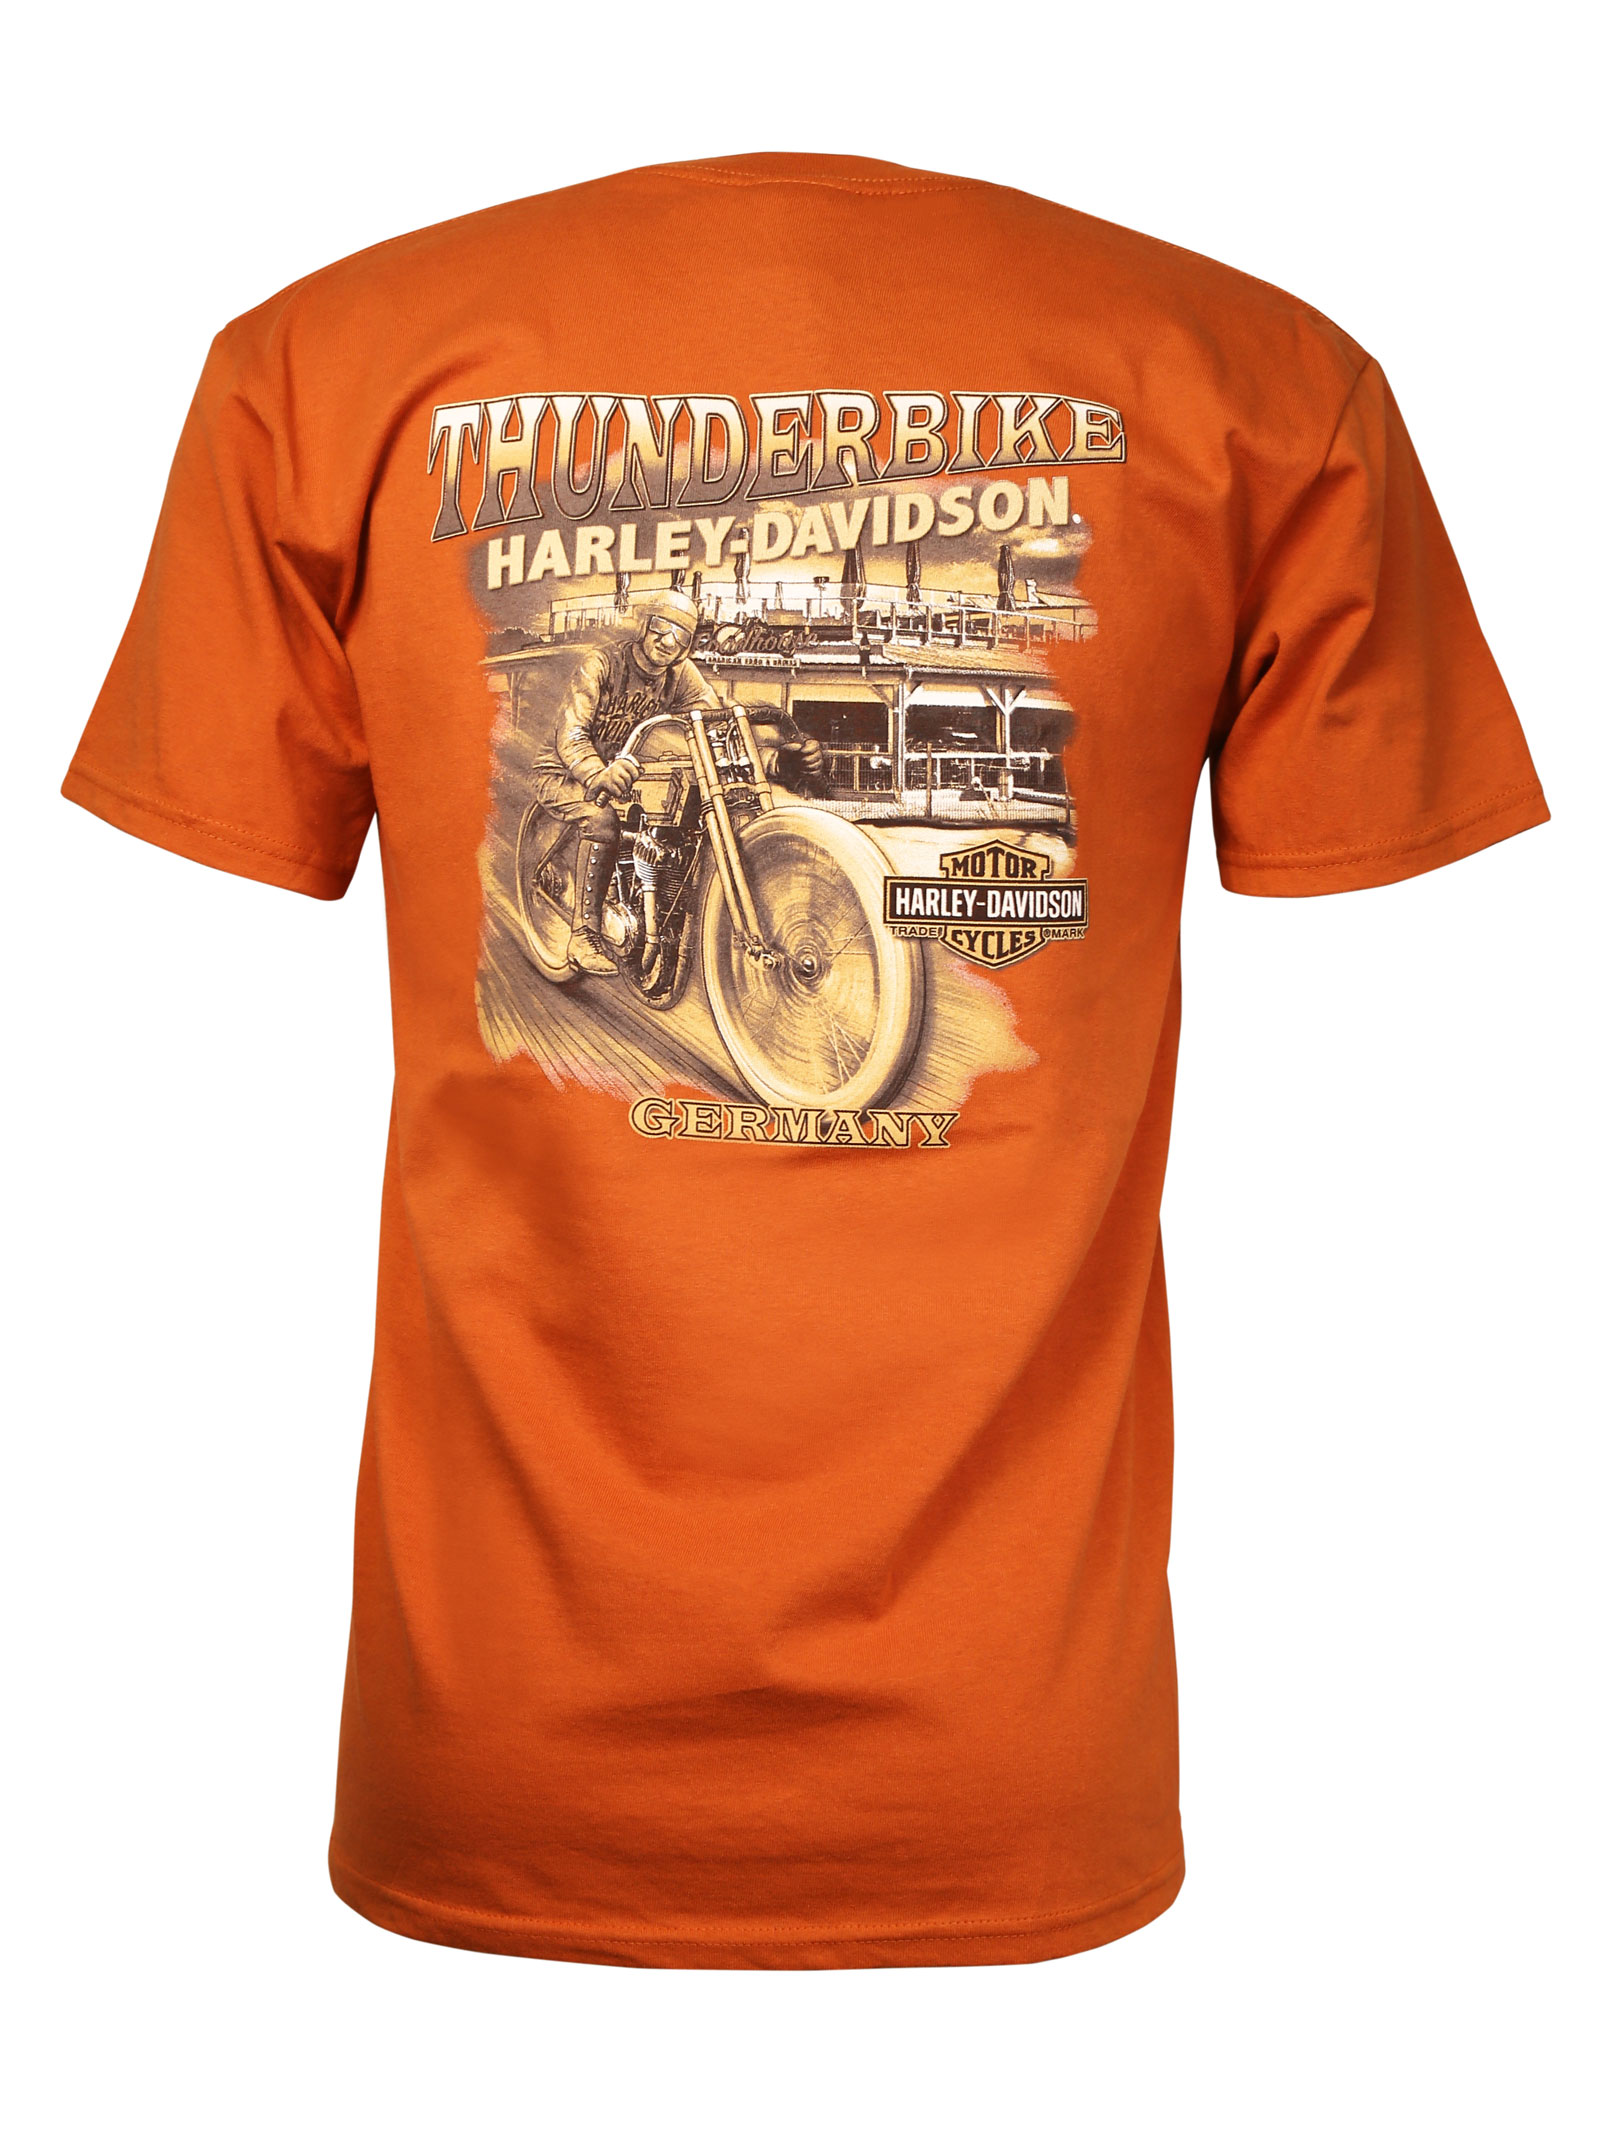 harley davidson t shirt empowered heritage at thunderbike shop. Black Bedroom Furniture Sets. Home Design Ideas